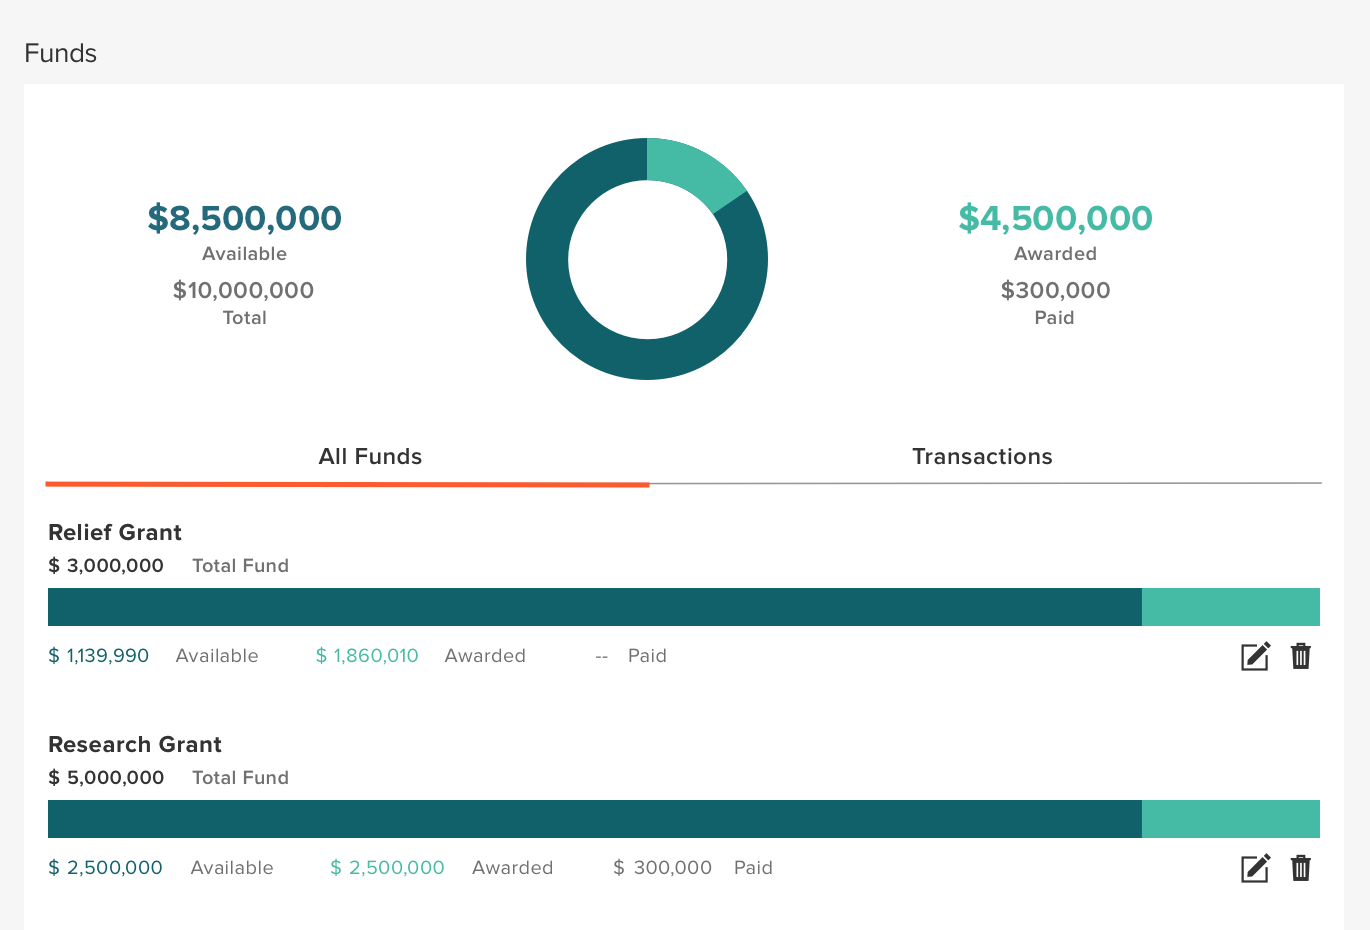 Stay on budget and on schedule with Submittable's Funds Tracking and Distribution capabilities.